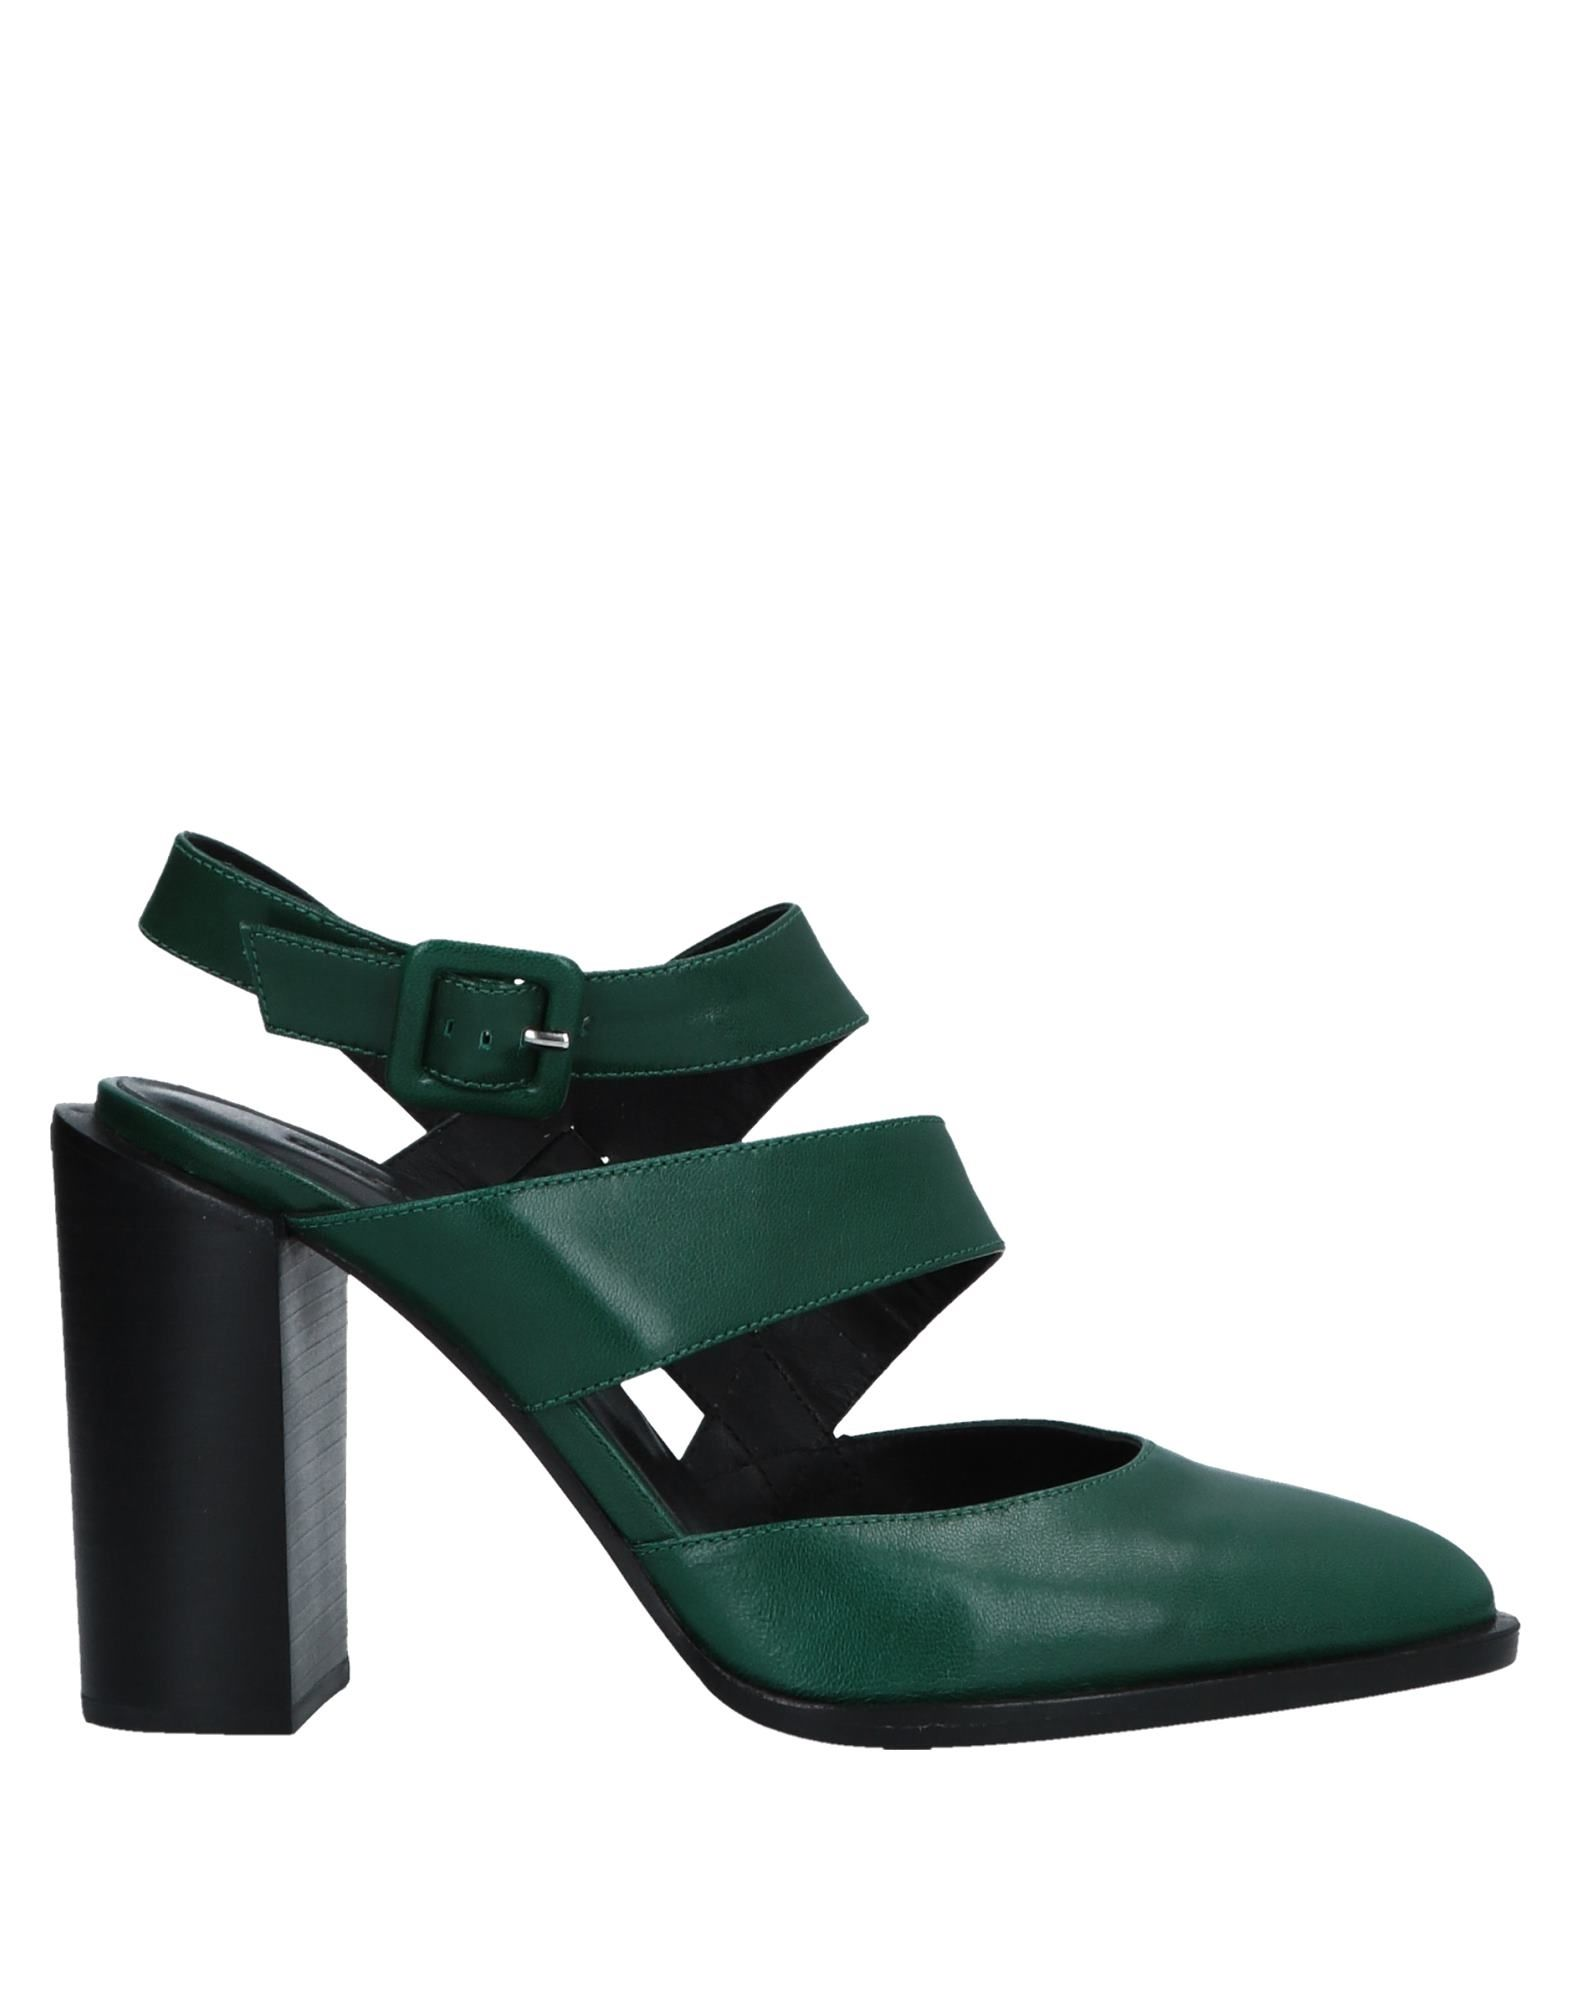 ff27df78 Buy see by chloÉ pumps for women - Best women's see by chloÉ pumps ...